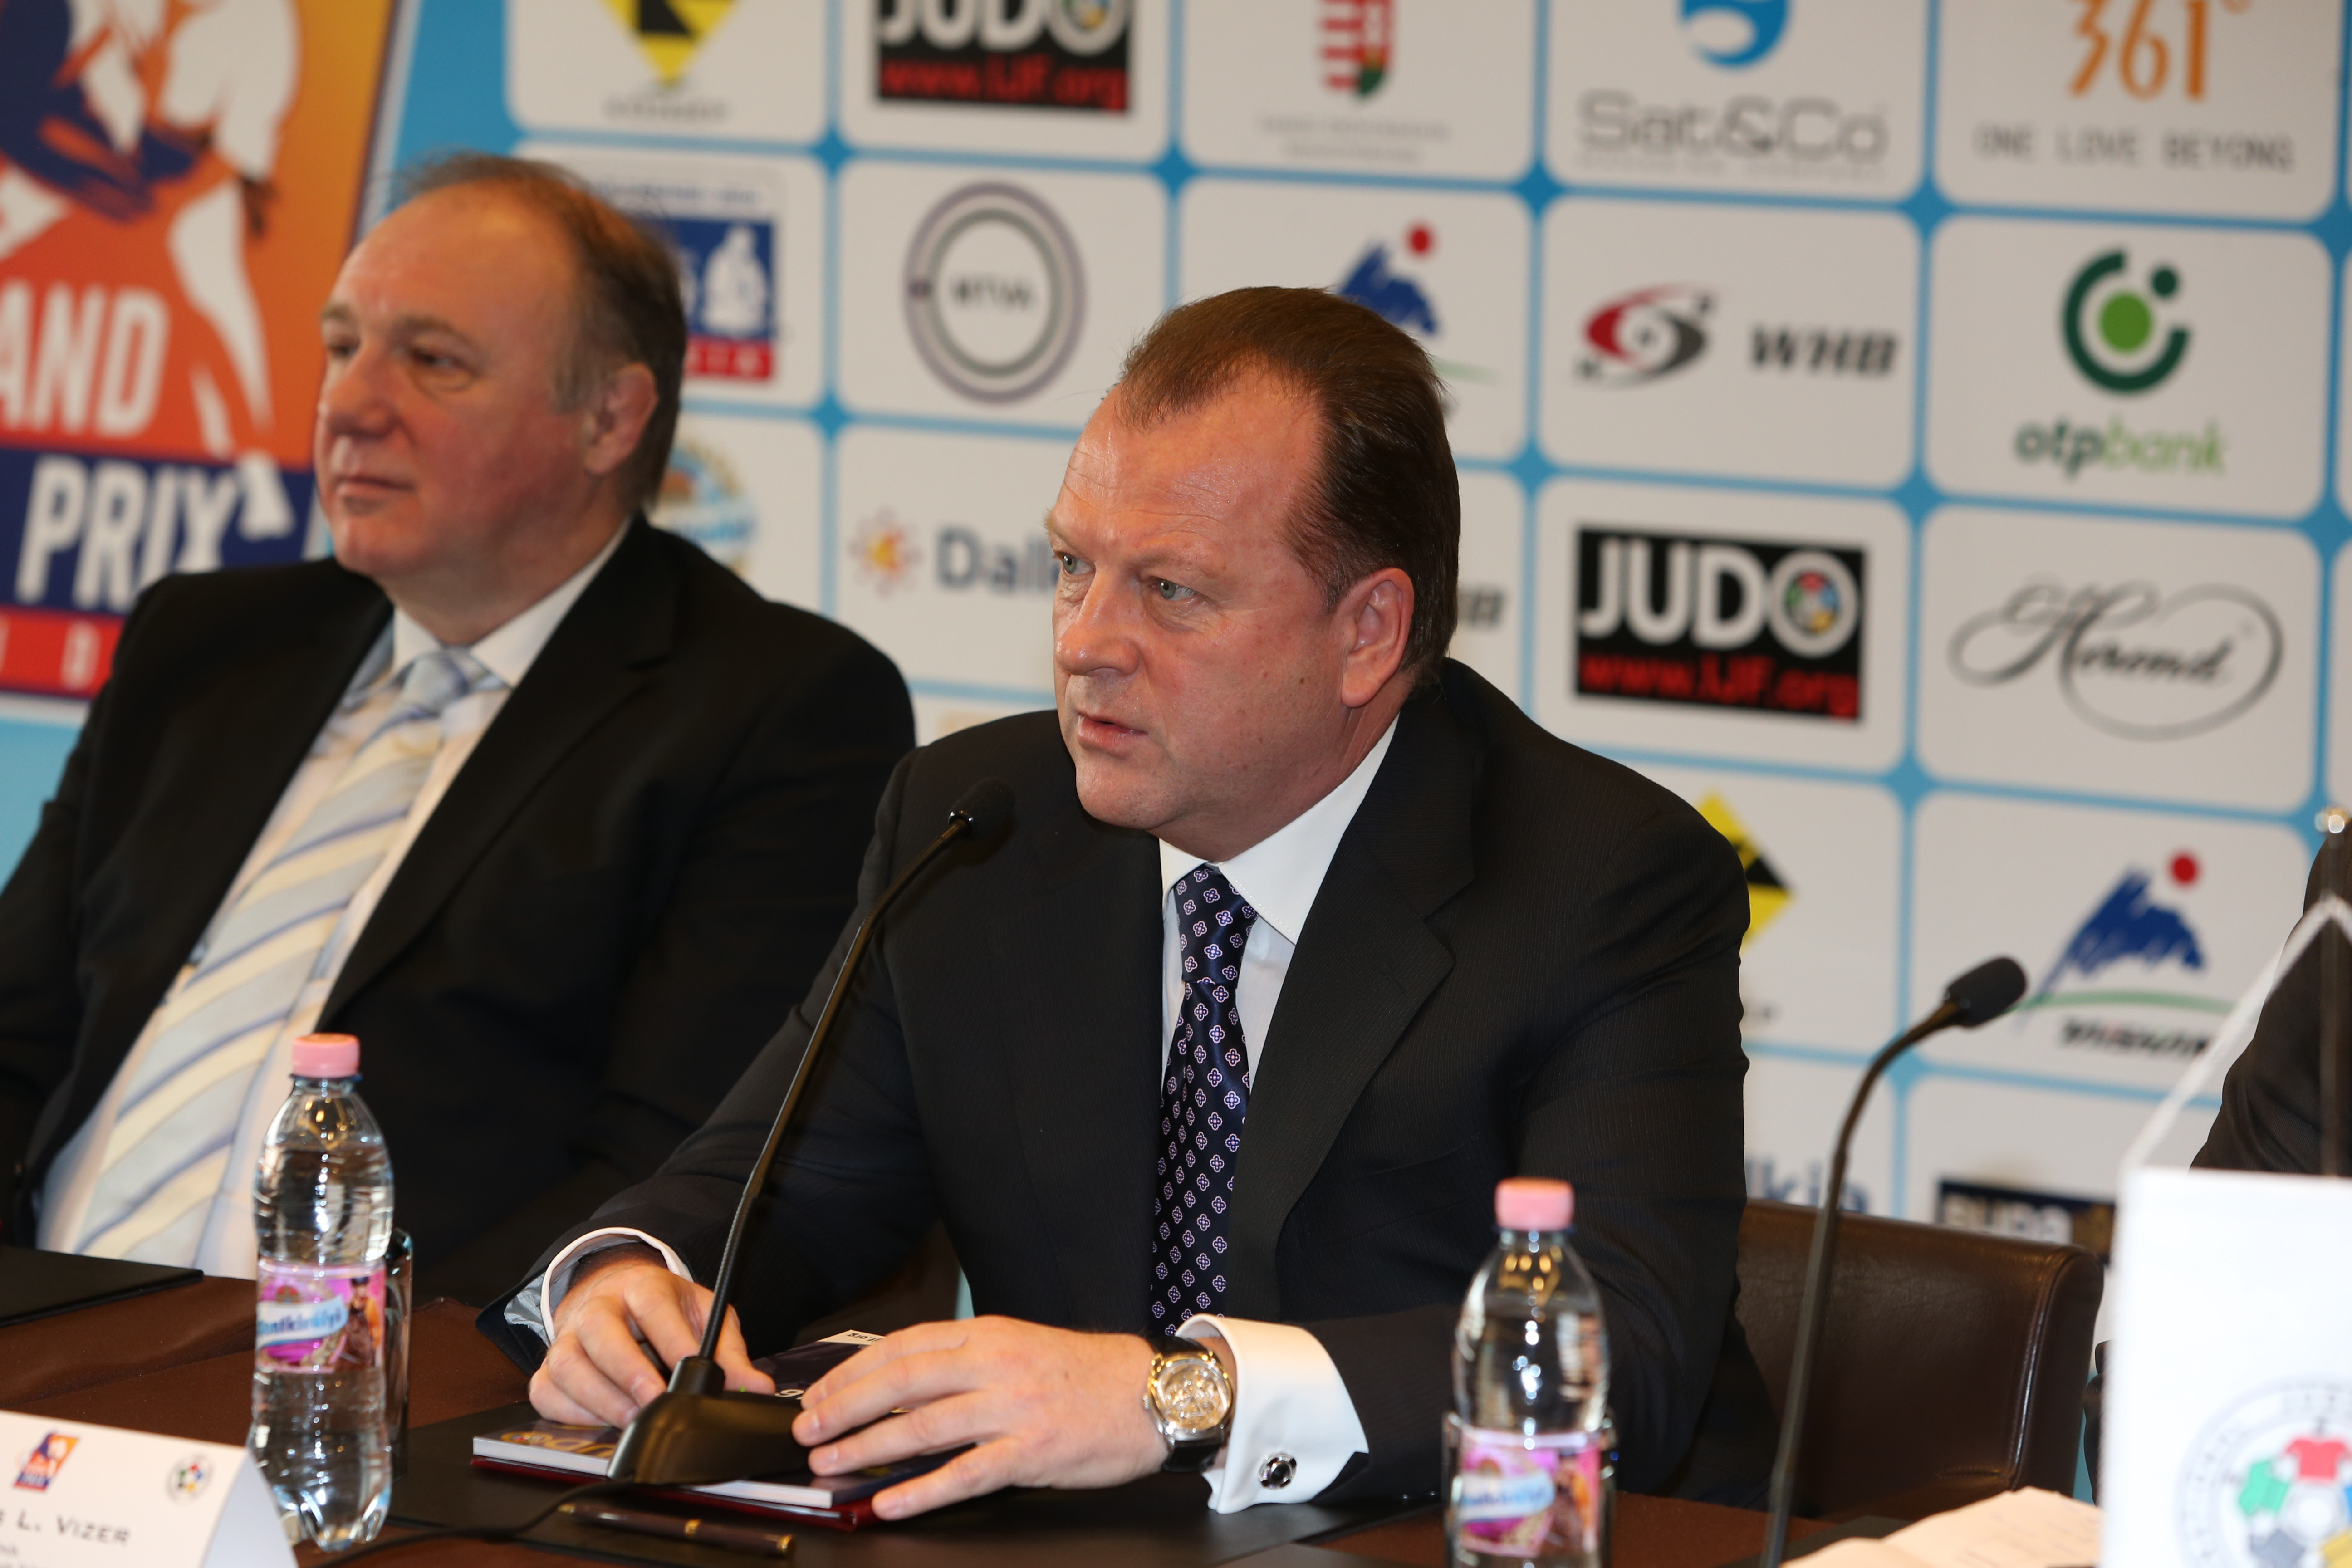 IJF President Statement: 'The Migration of Judokas To Other Sports Will Spiritually Contaminate Judo'